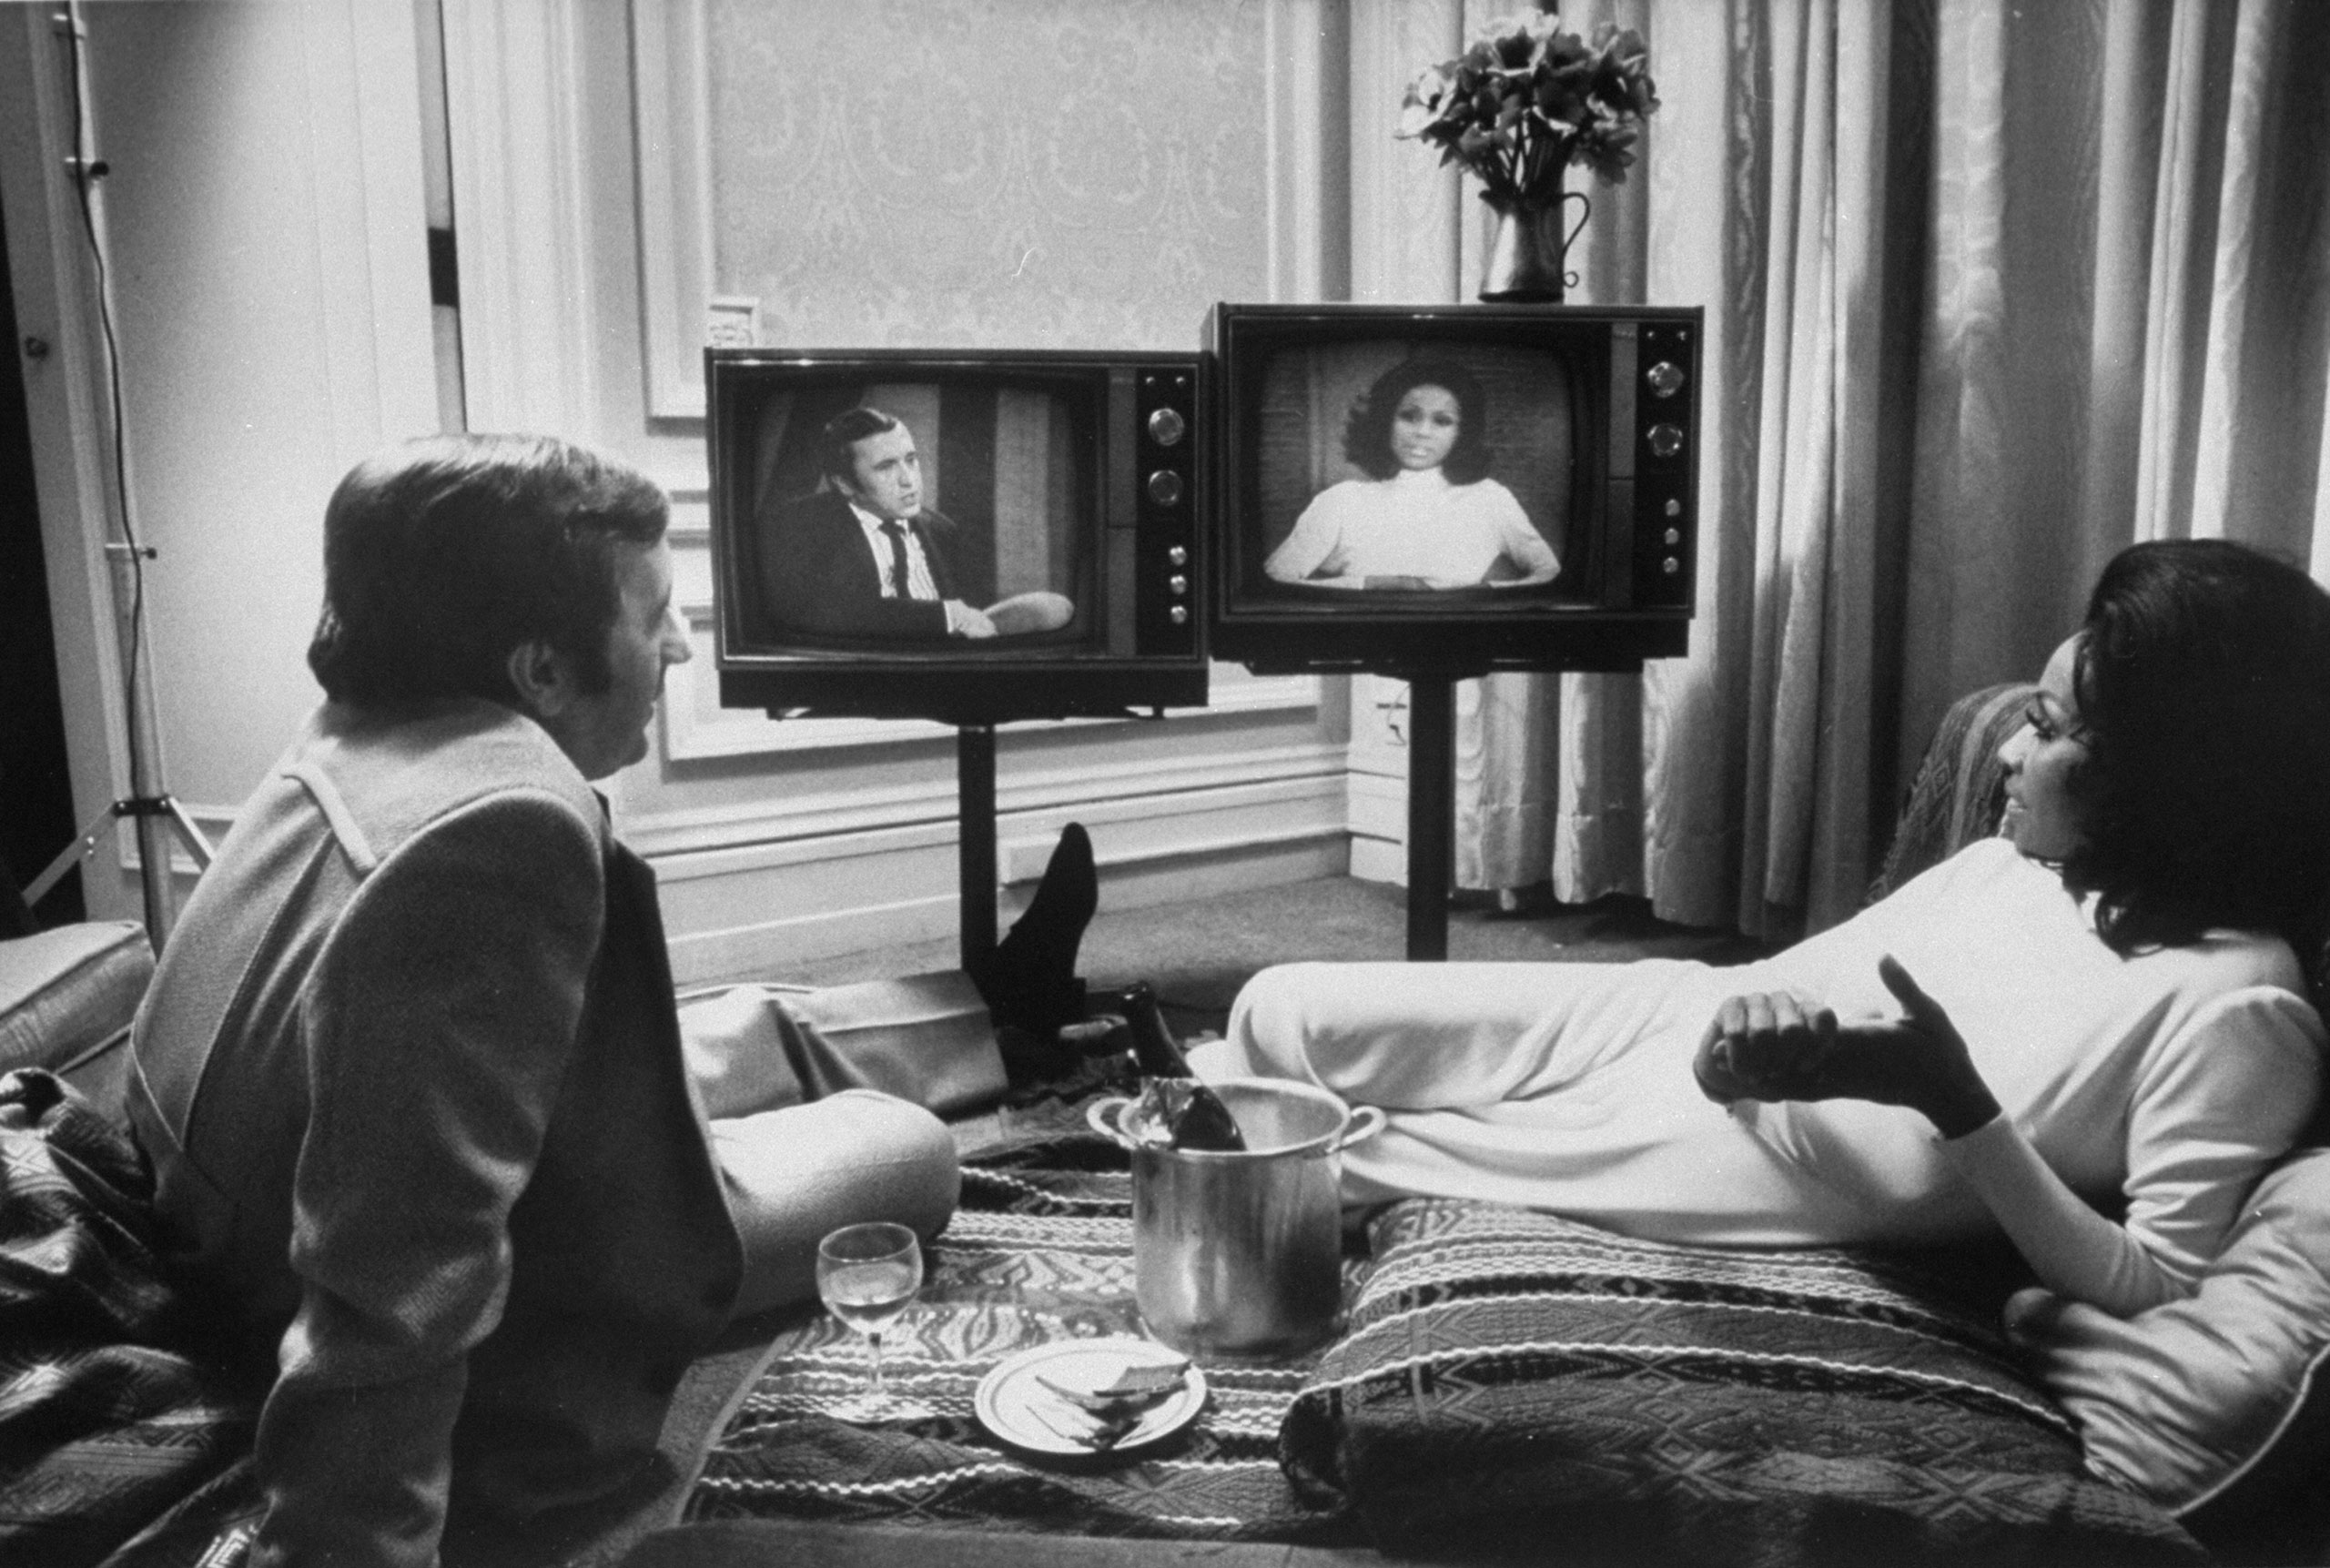 Actress Diahann Carroll and journalist David Frost watch themselves on separate talk shows. Carroll and Frost were engaged for a while, but never married.